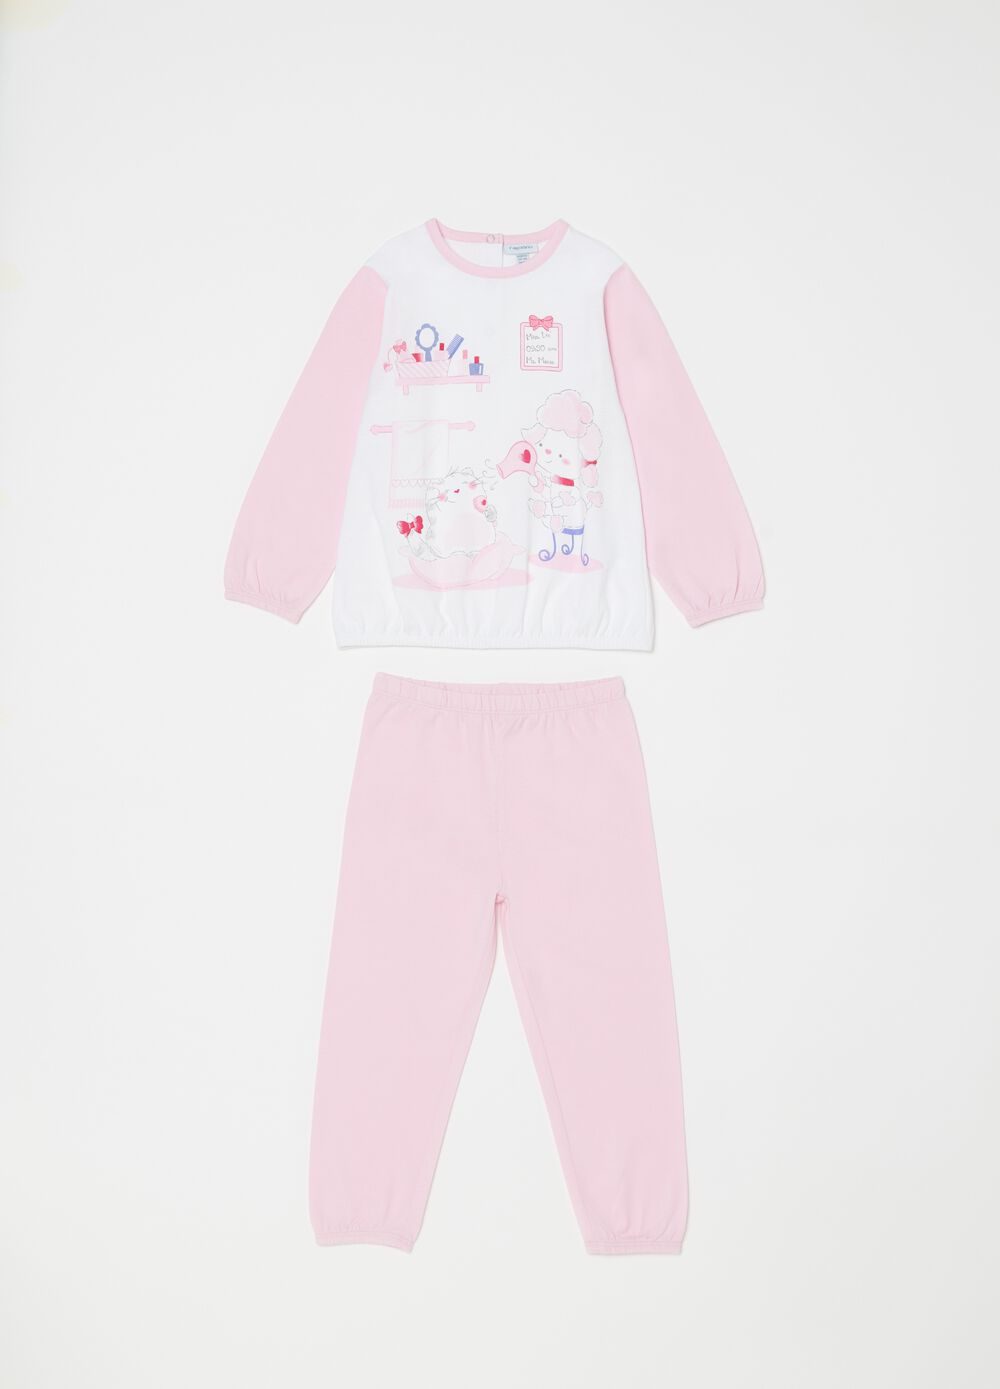 100% biocotton pyjamas with sheep print